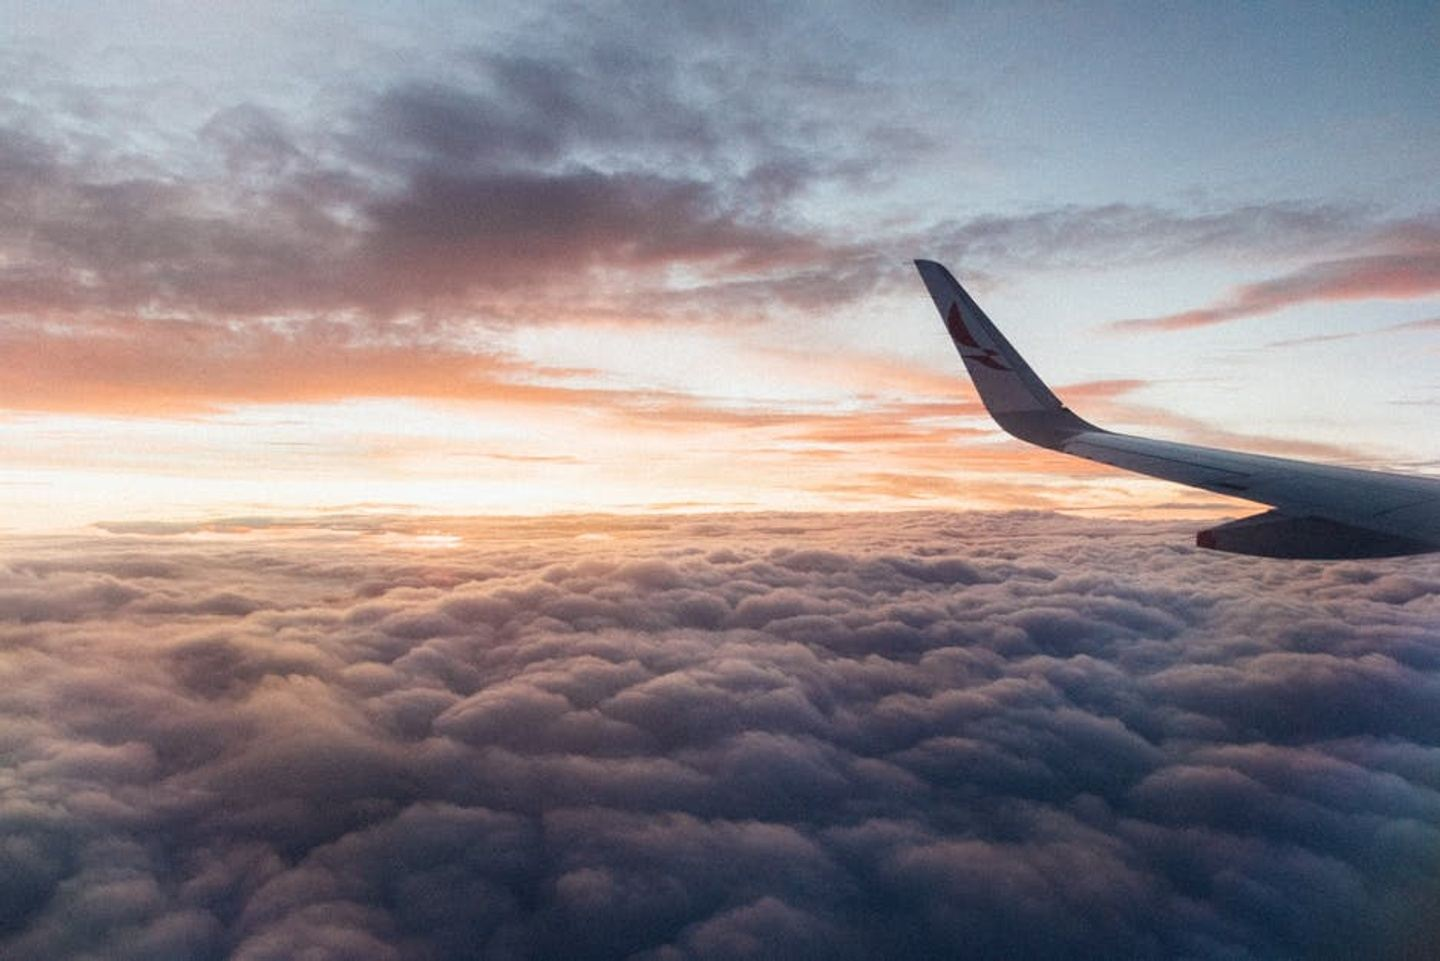 How to Get Last Minute Flight Deals for Spontaneous Trips